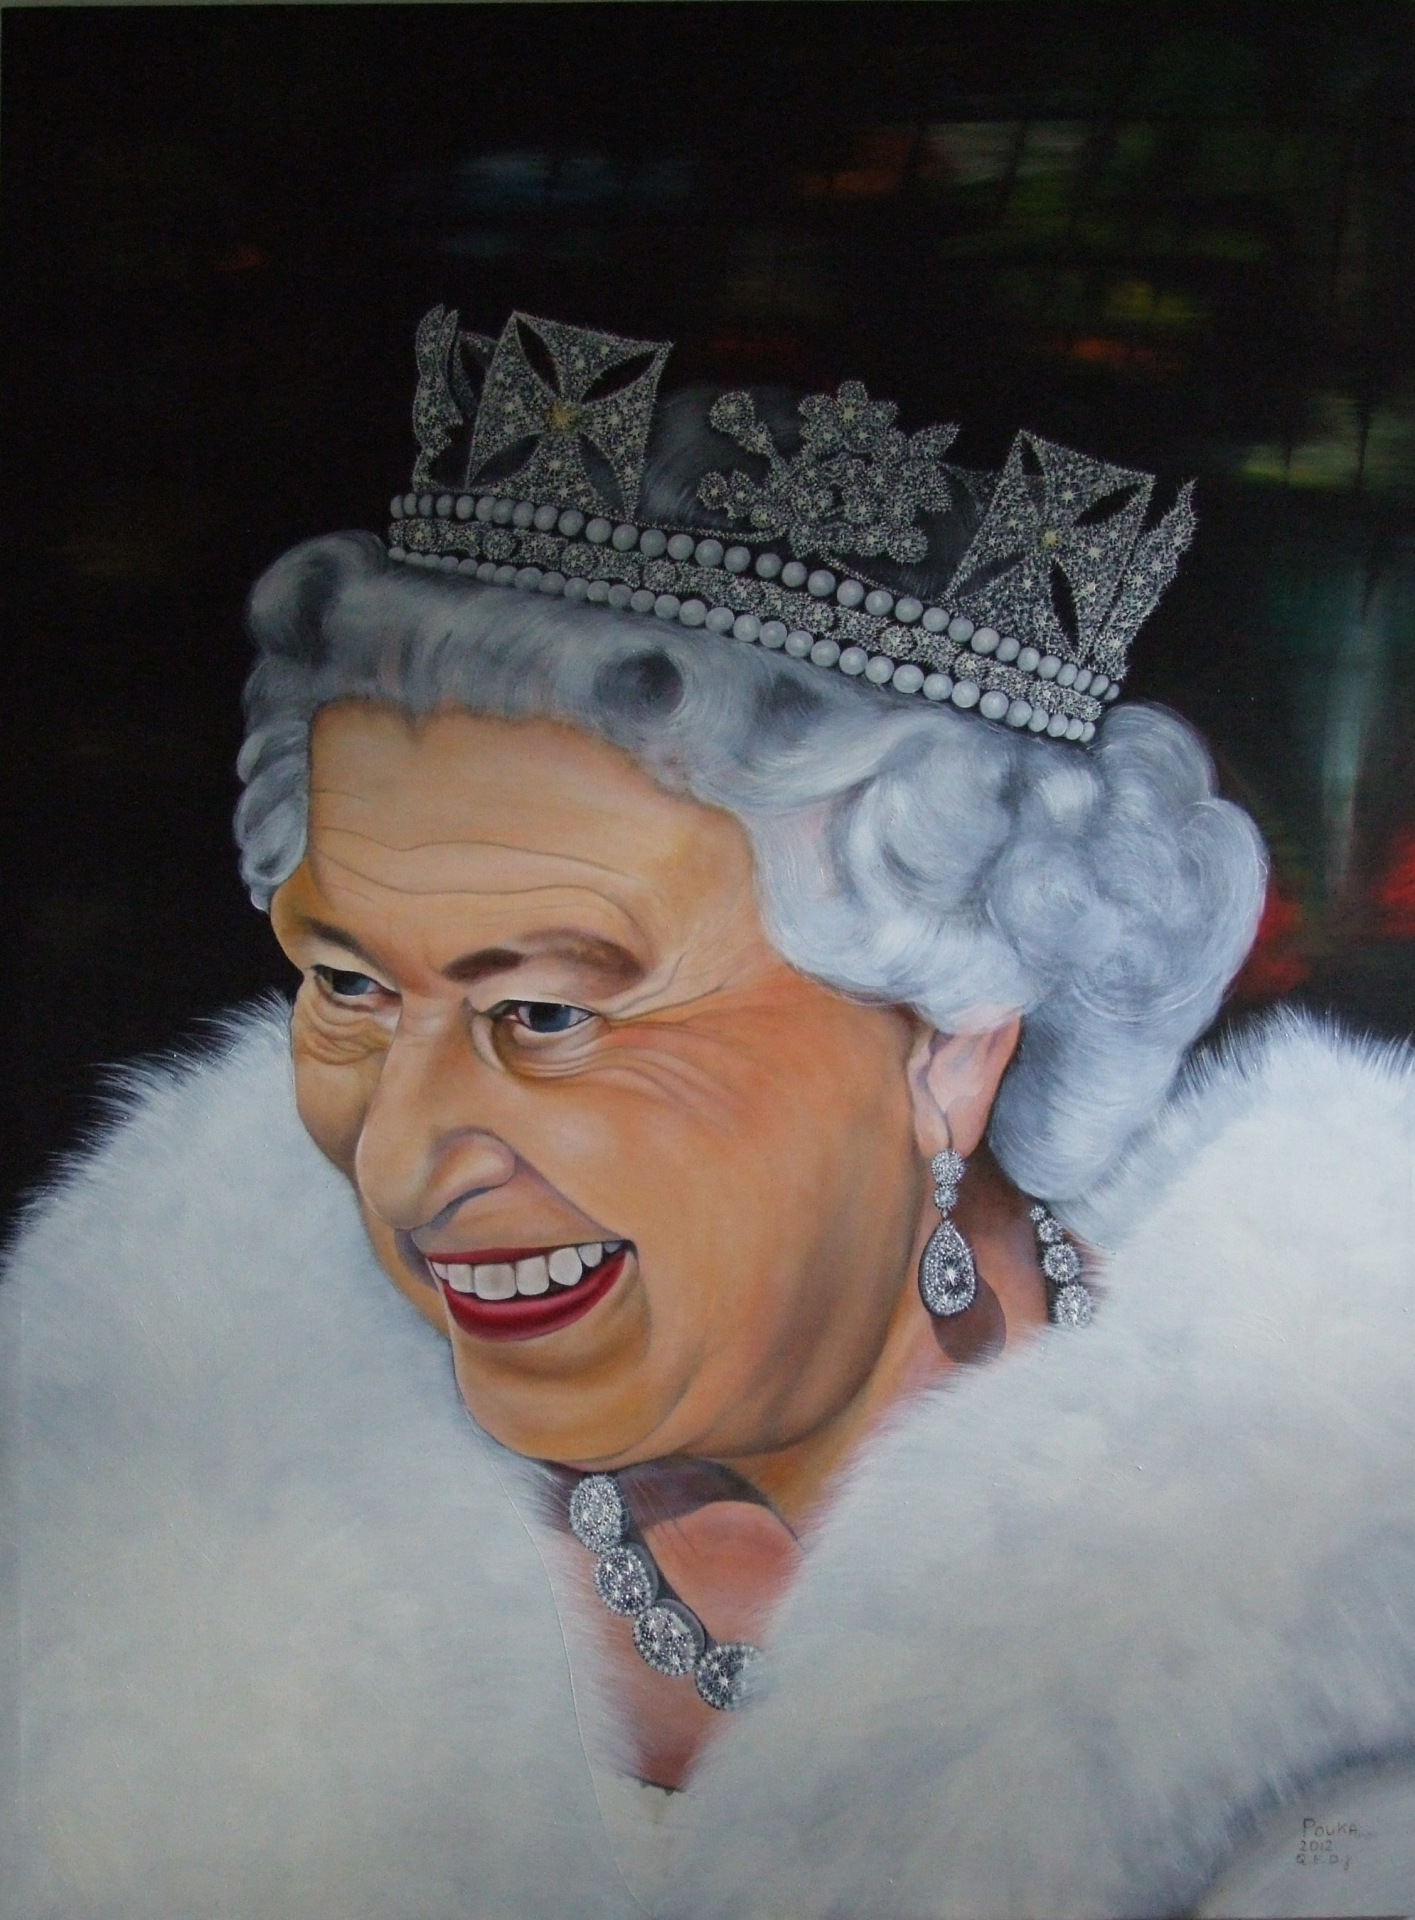 Diamond Jubilee Portrait 110 x 140 cm